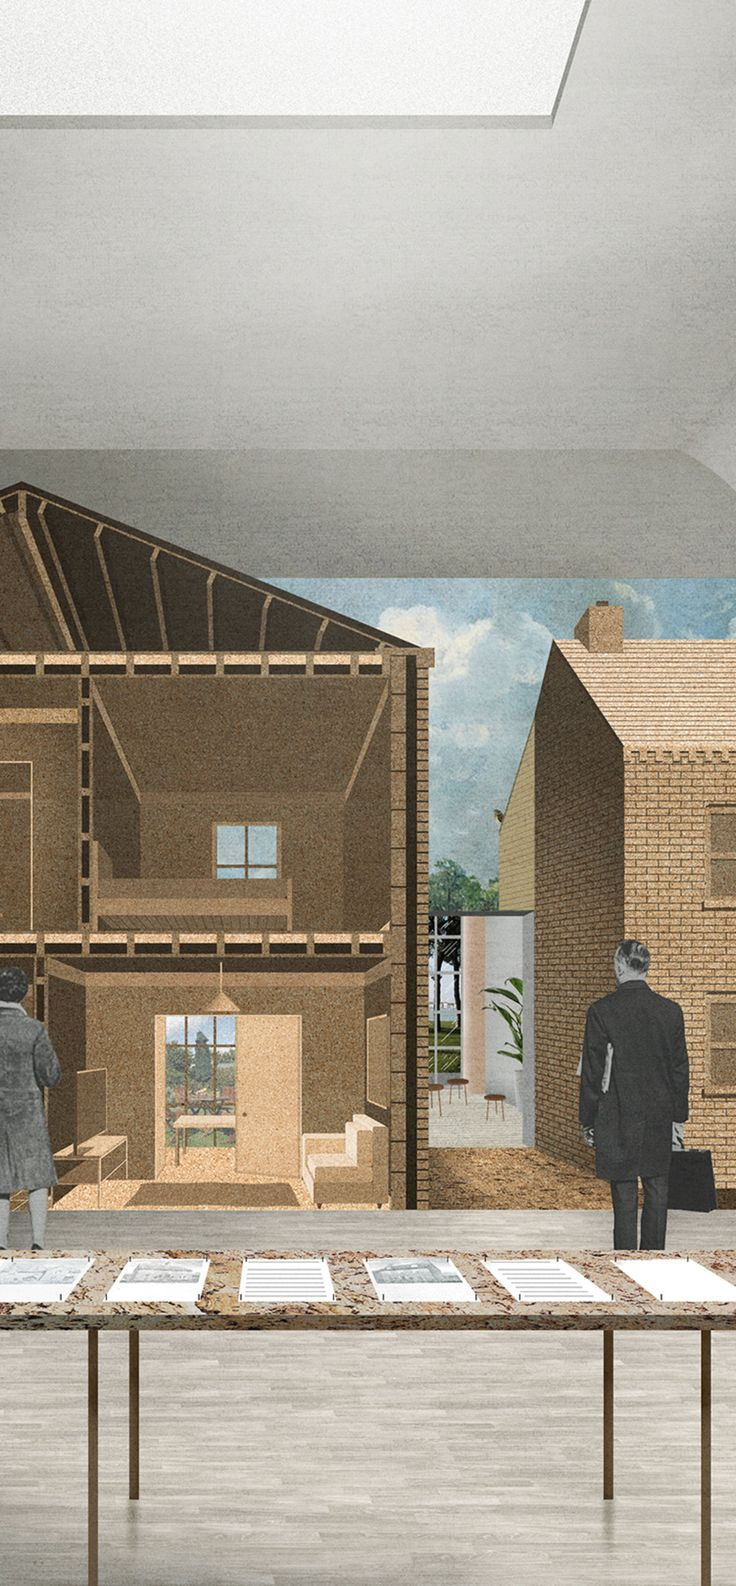 OMMX (London) and James Taylor-Foster (London, Rotterdam, Venice) were placed in the final shortlist to curate and design the British Pavilion at the 2016 International Architecture Exhibition – La Biennale di Venezia, *Reporting From the Front*. *K...